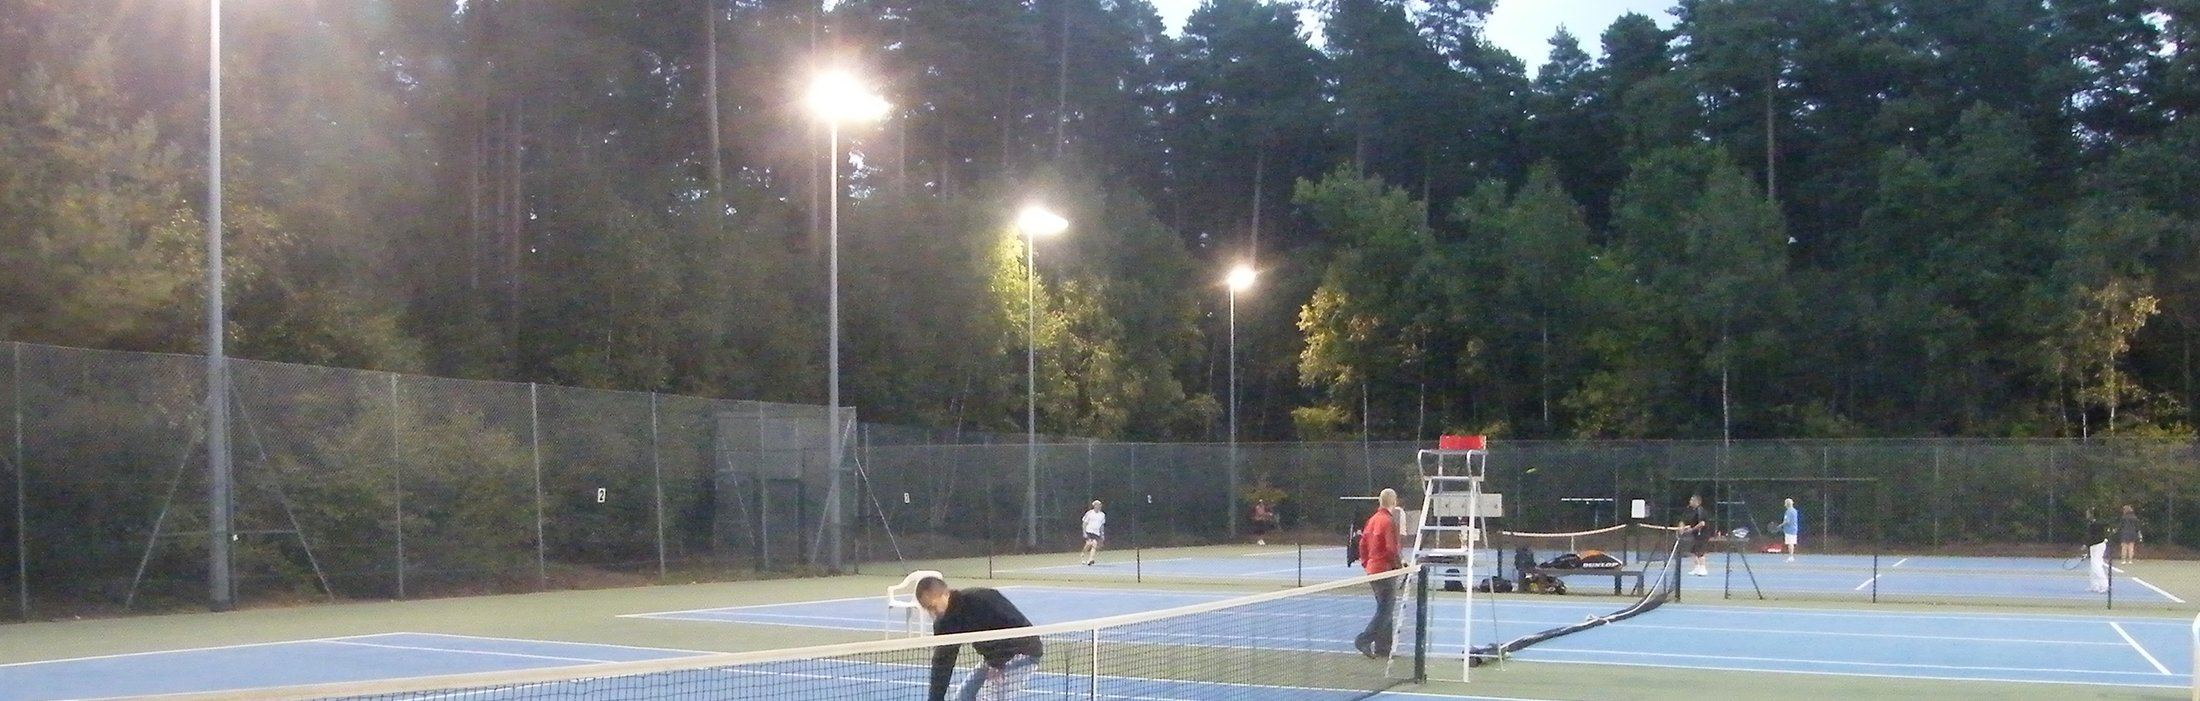 Finals Day at Crowthorne Tennis Club's four floodlit all-weather courts